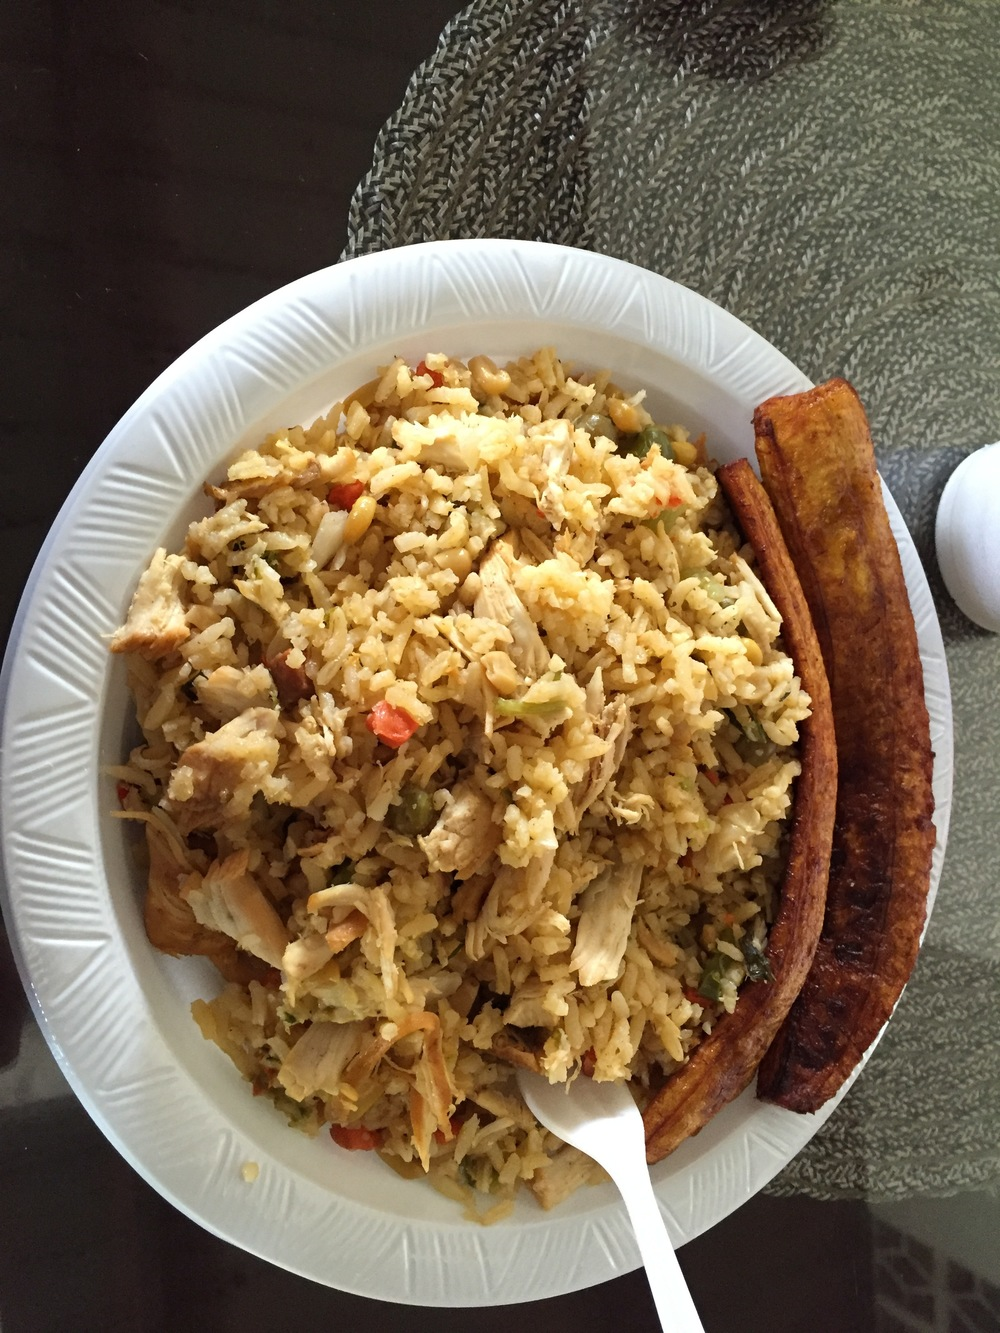 Delicious arroz con pollo and bananas prepared by Sugey after our work day!